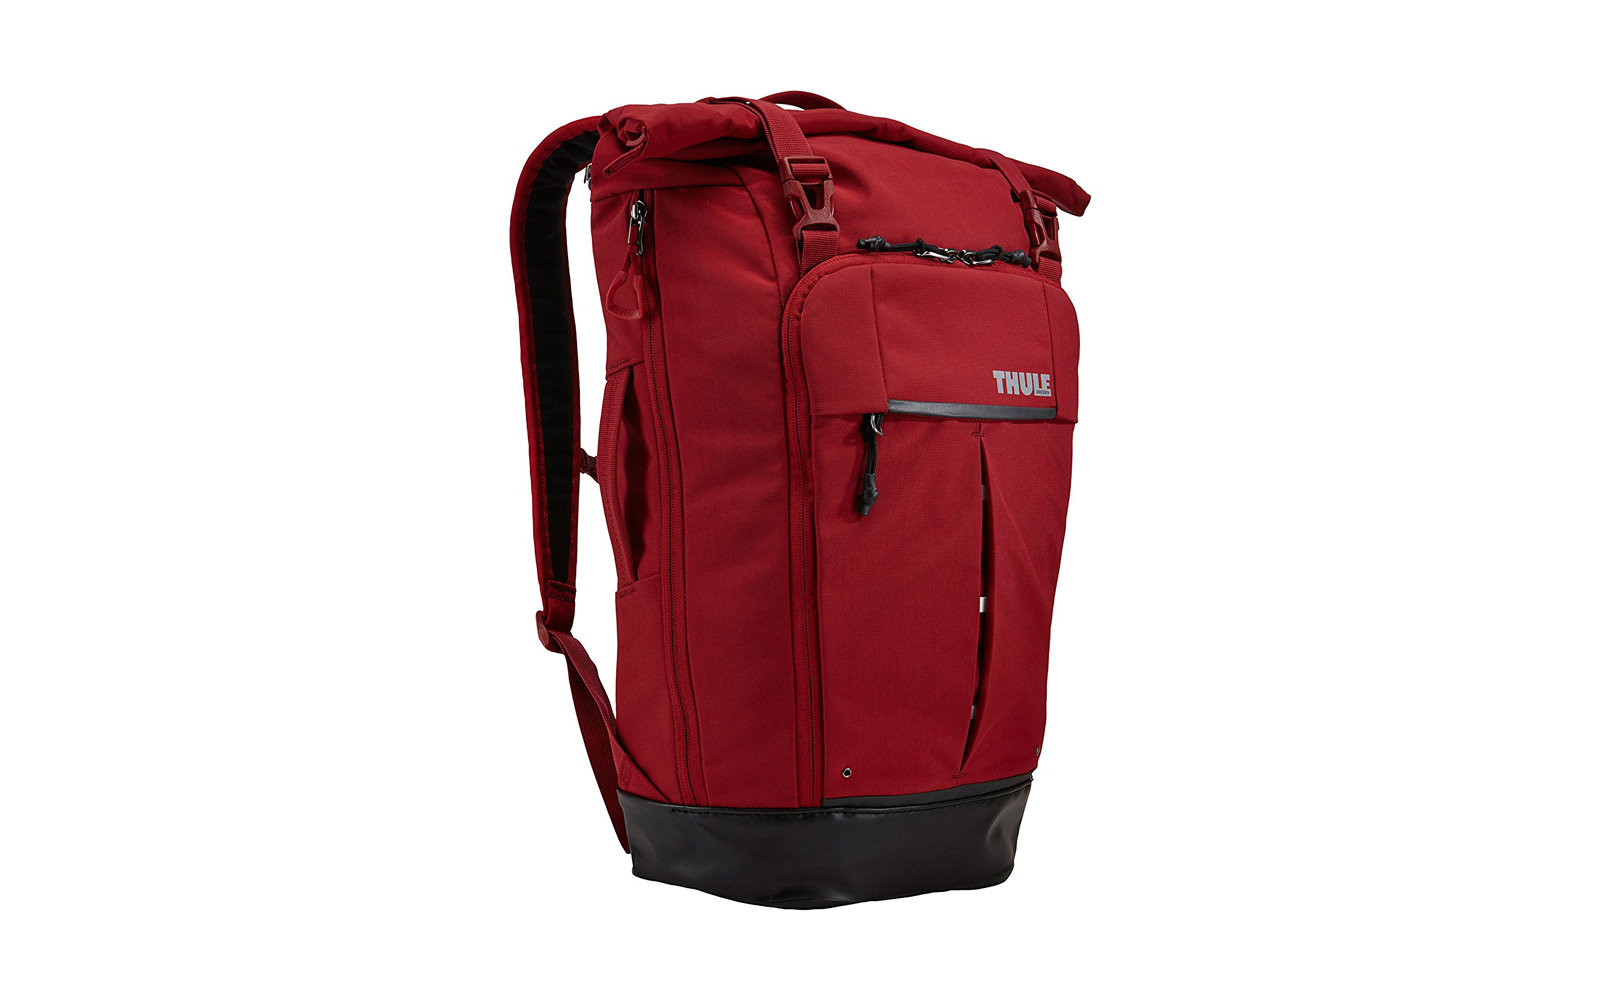 ccbf52870393 The Best Laptop Backpacks for Travel